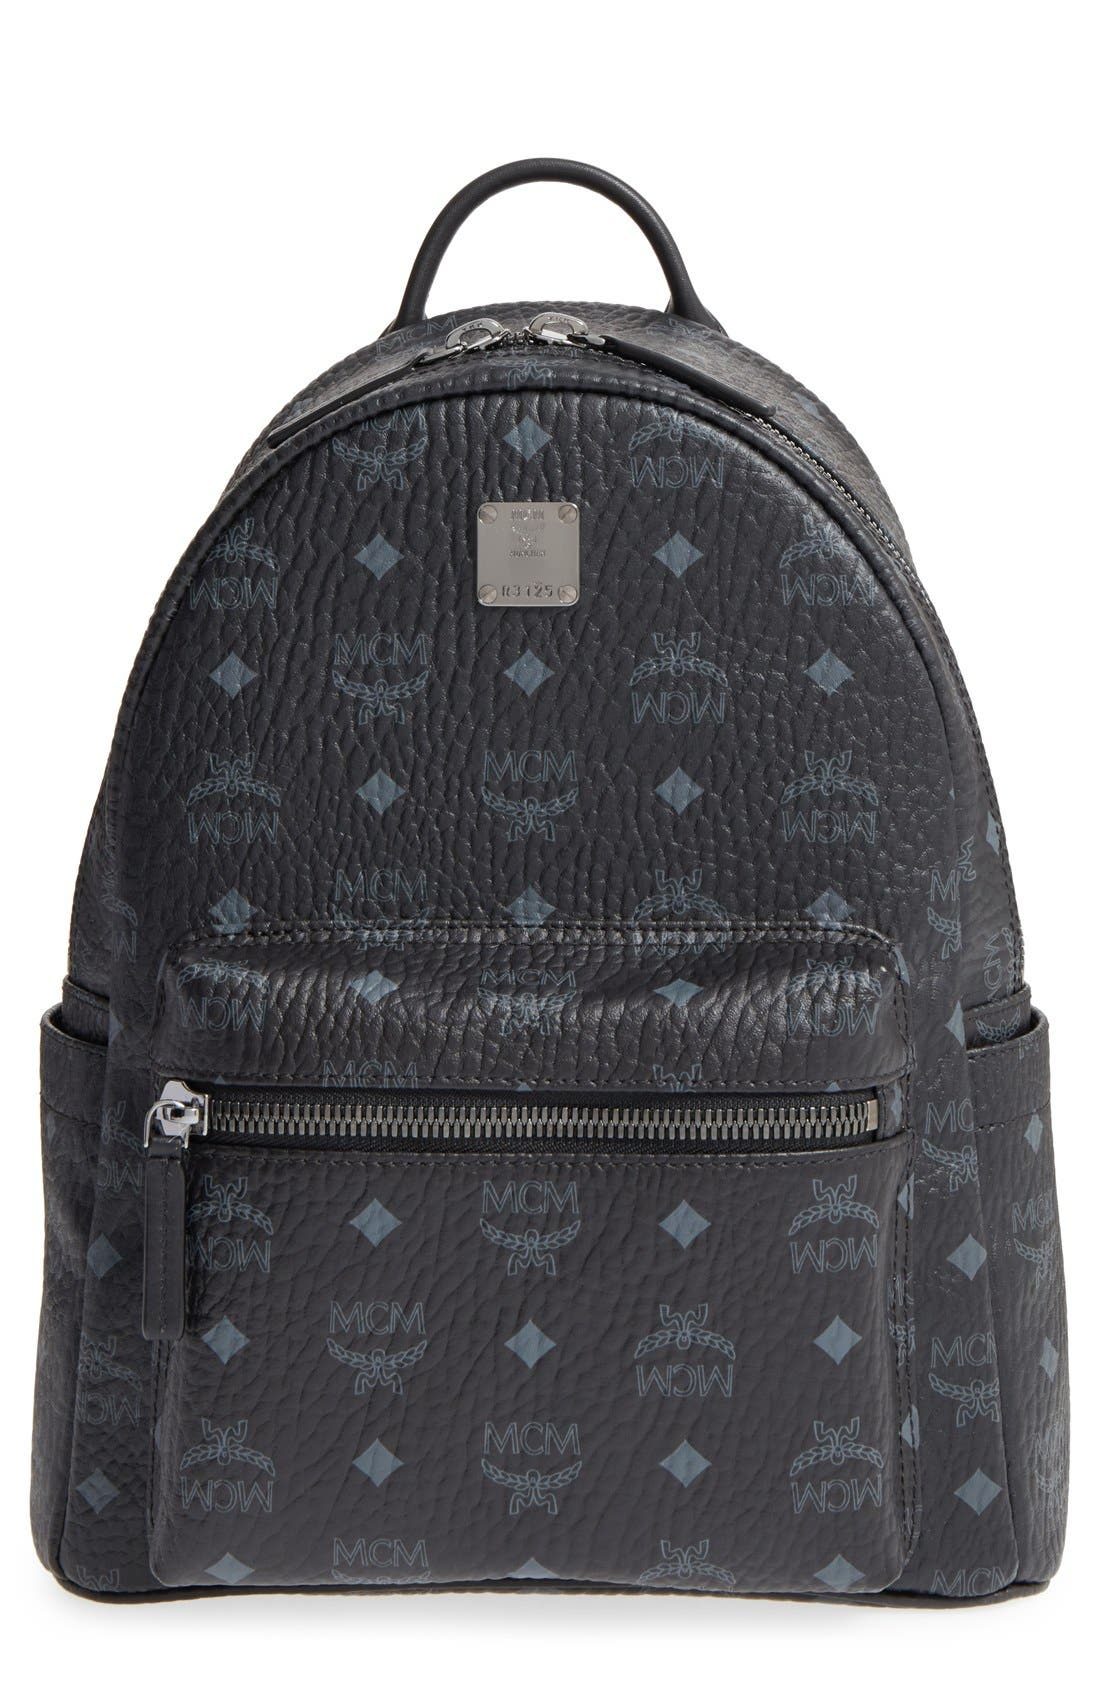 Alternate Image 1 Selected - MCM Small Stark - Visetos Backpack